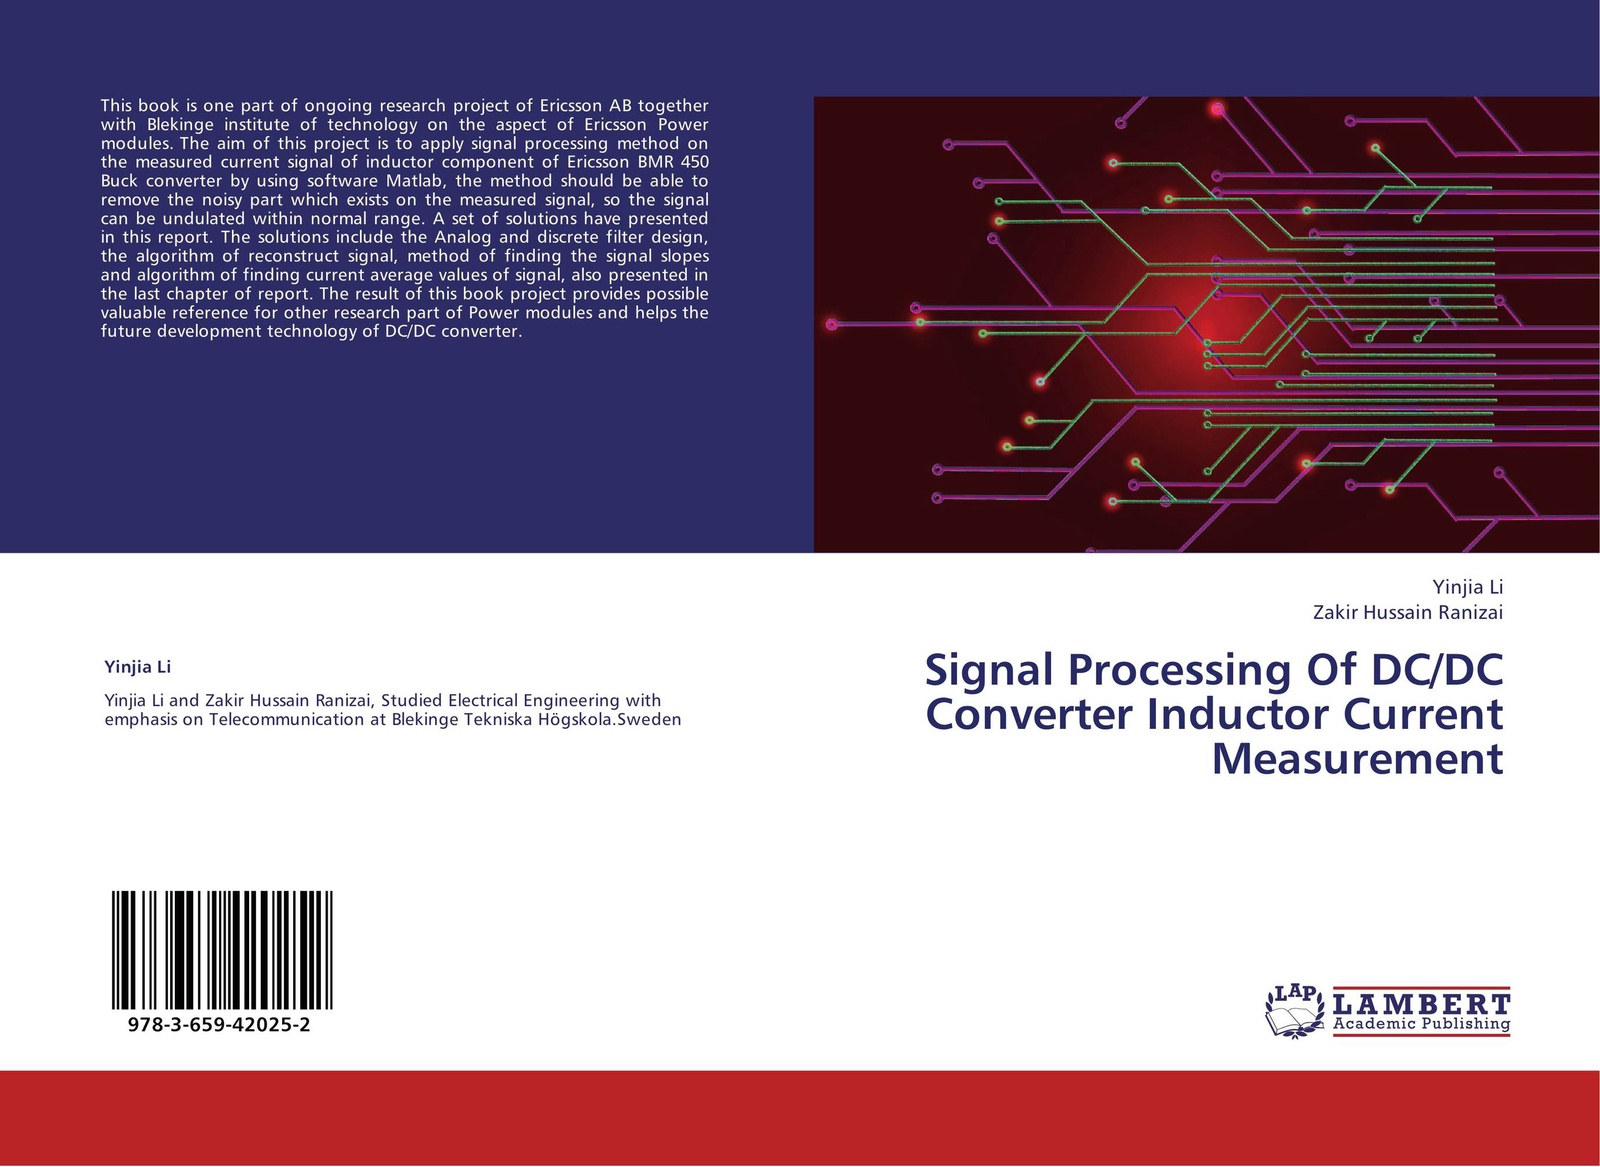 Yinjia Li and Zakir Hussain Ranizai Signal Processing Of DC/DC Converter Inductor Current Measurement mhs2300a arbitrary waveform function signal generator cnc double channe of dds signal source sine square triangle 20mhz